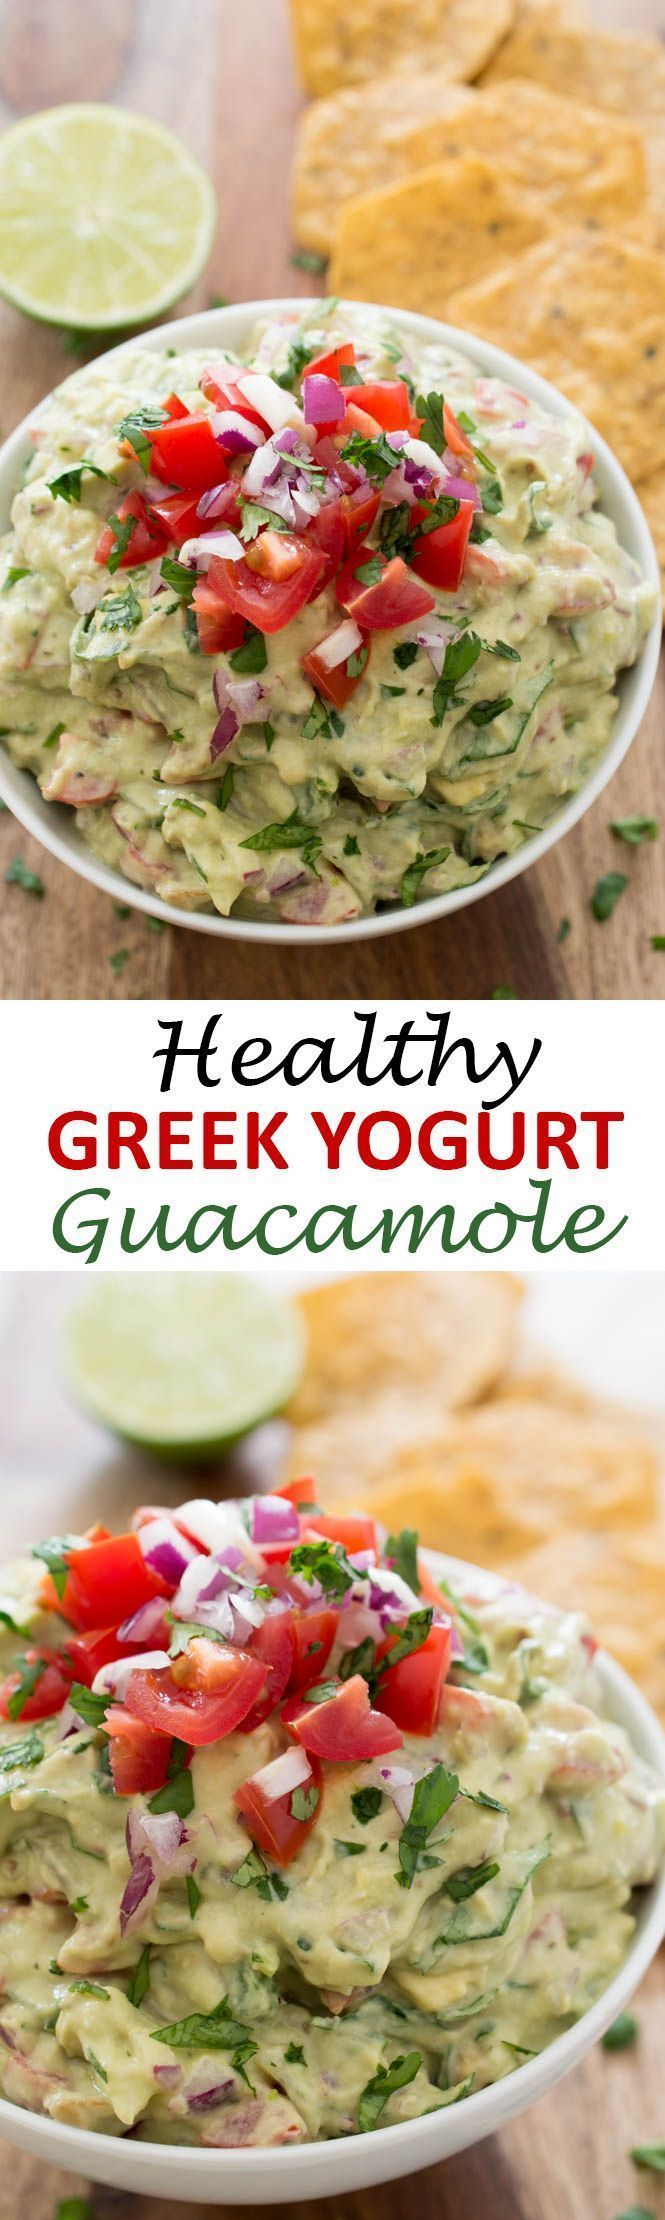 This Healthy Greek Yogurt Guacamole takes less than 10 minutes to make and is the perfect appetizer or snack. | chefsavvy.com #recipe #healthy #guacamole #appetizer